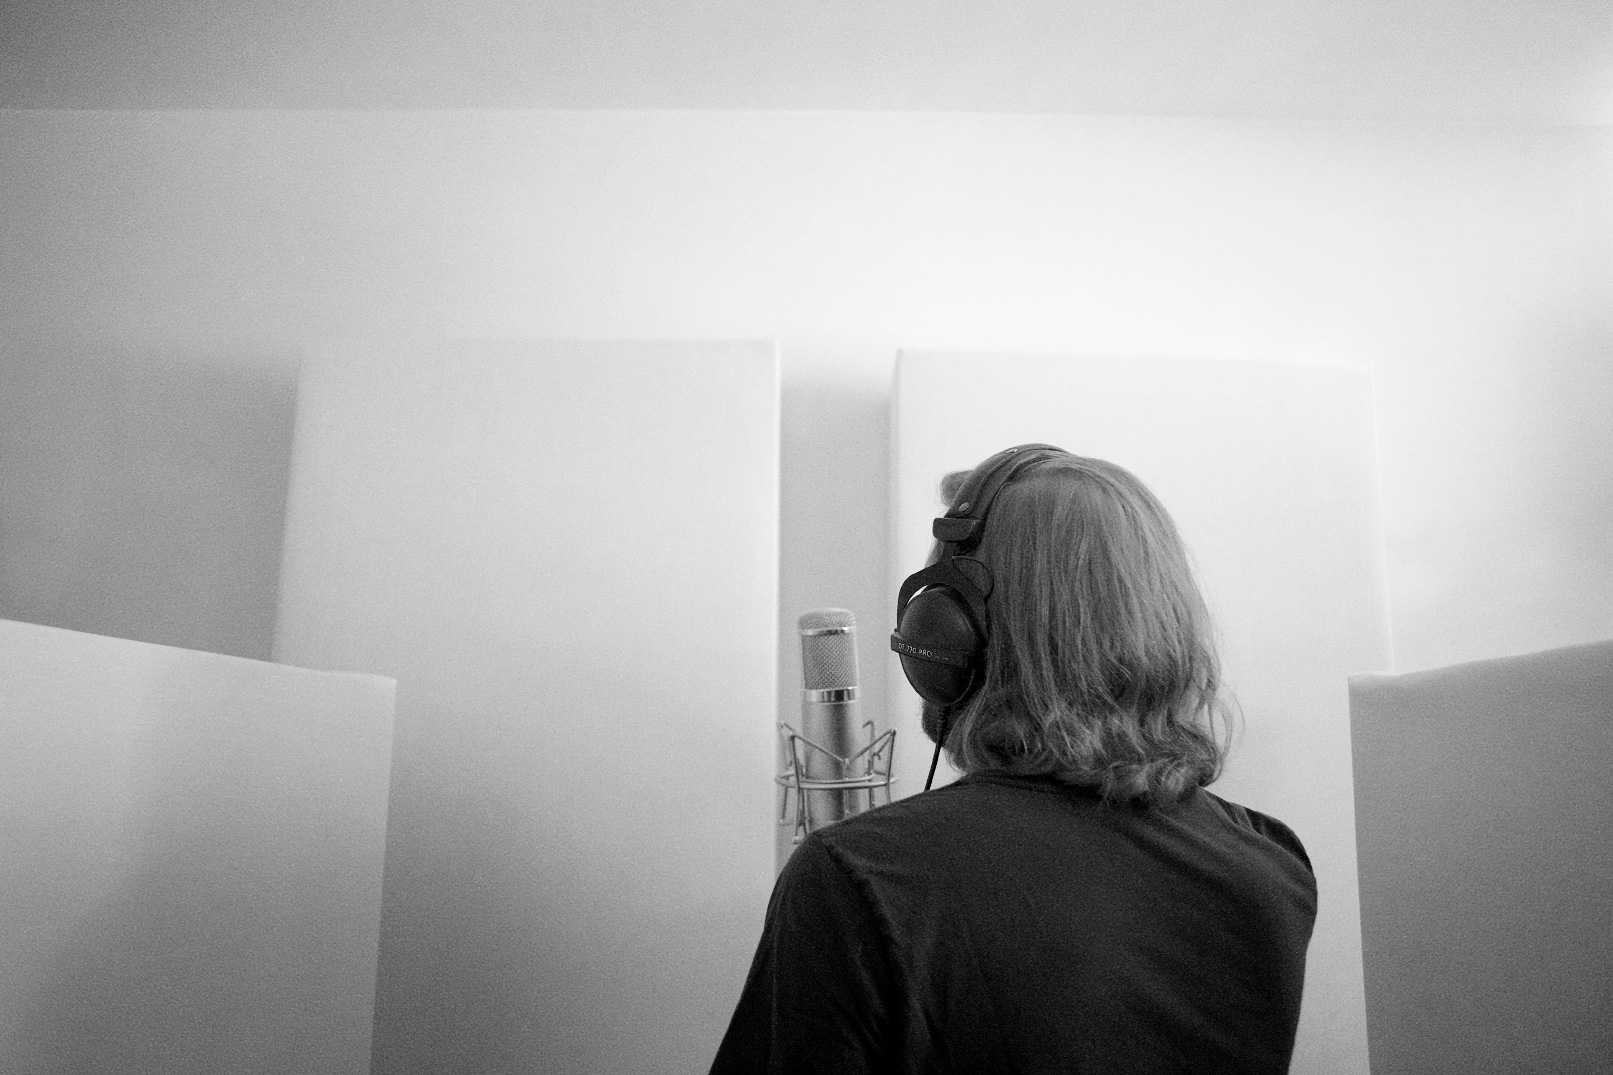 Tracking whistles in the studio. I think there were 6 overdubs of whistling.